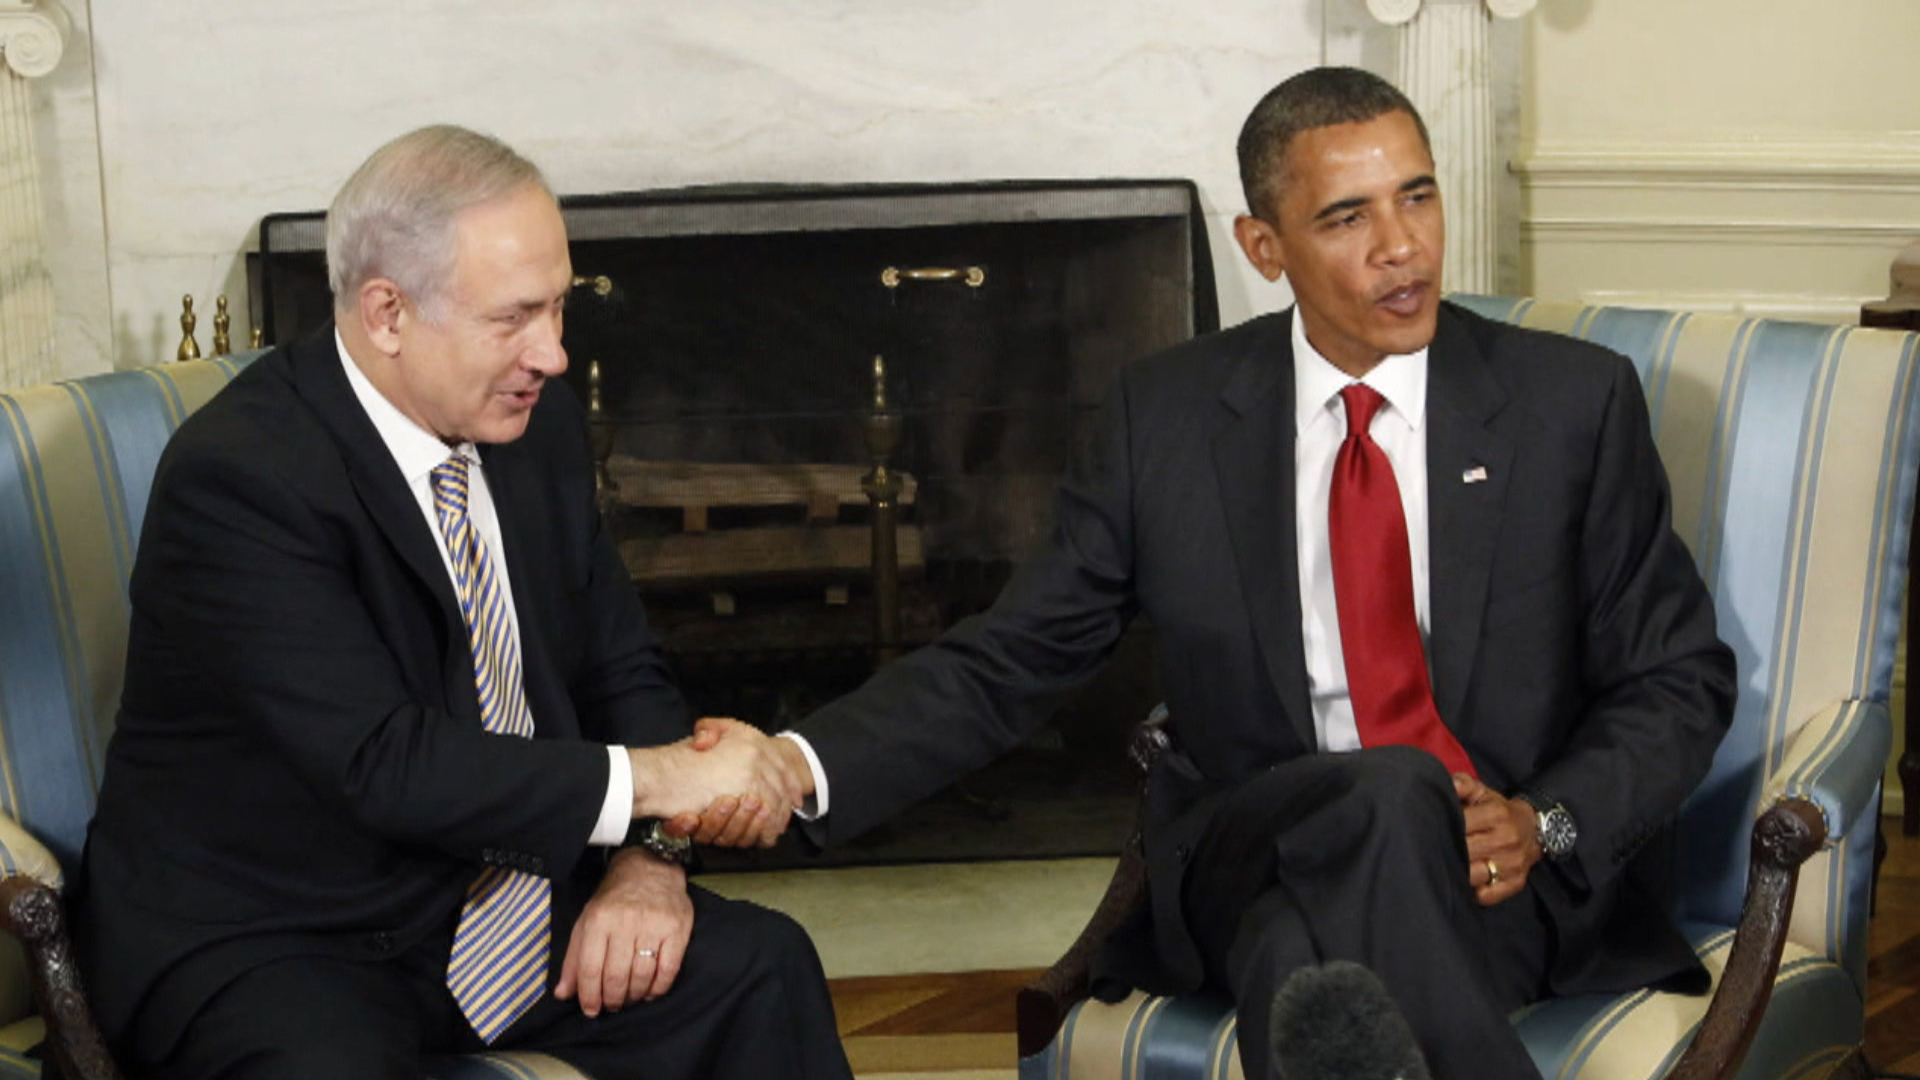 Obama offers tough love to Israeli PM